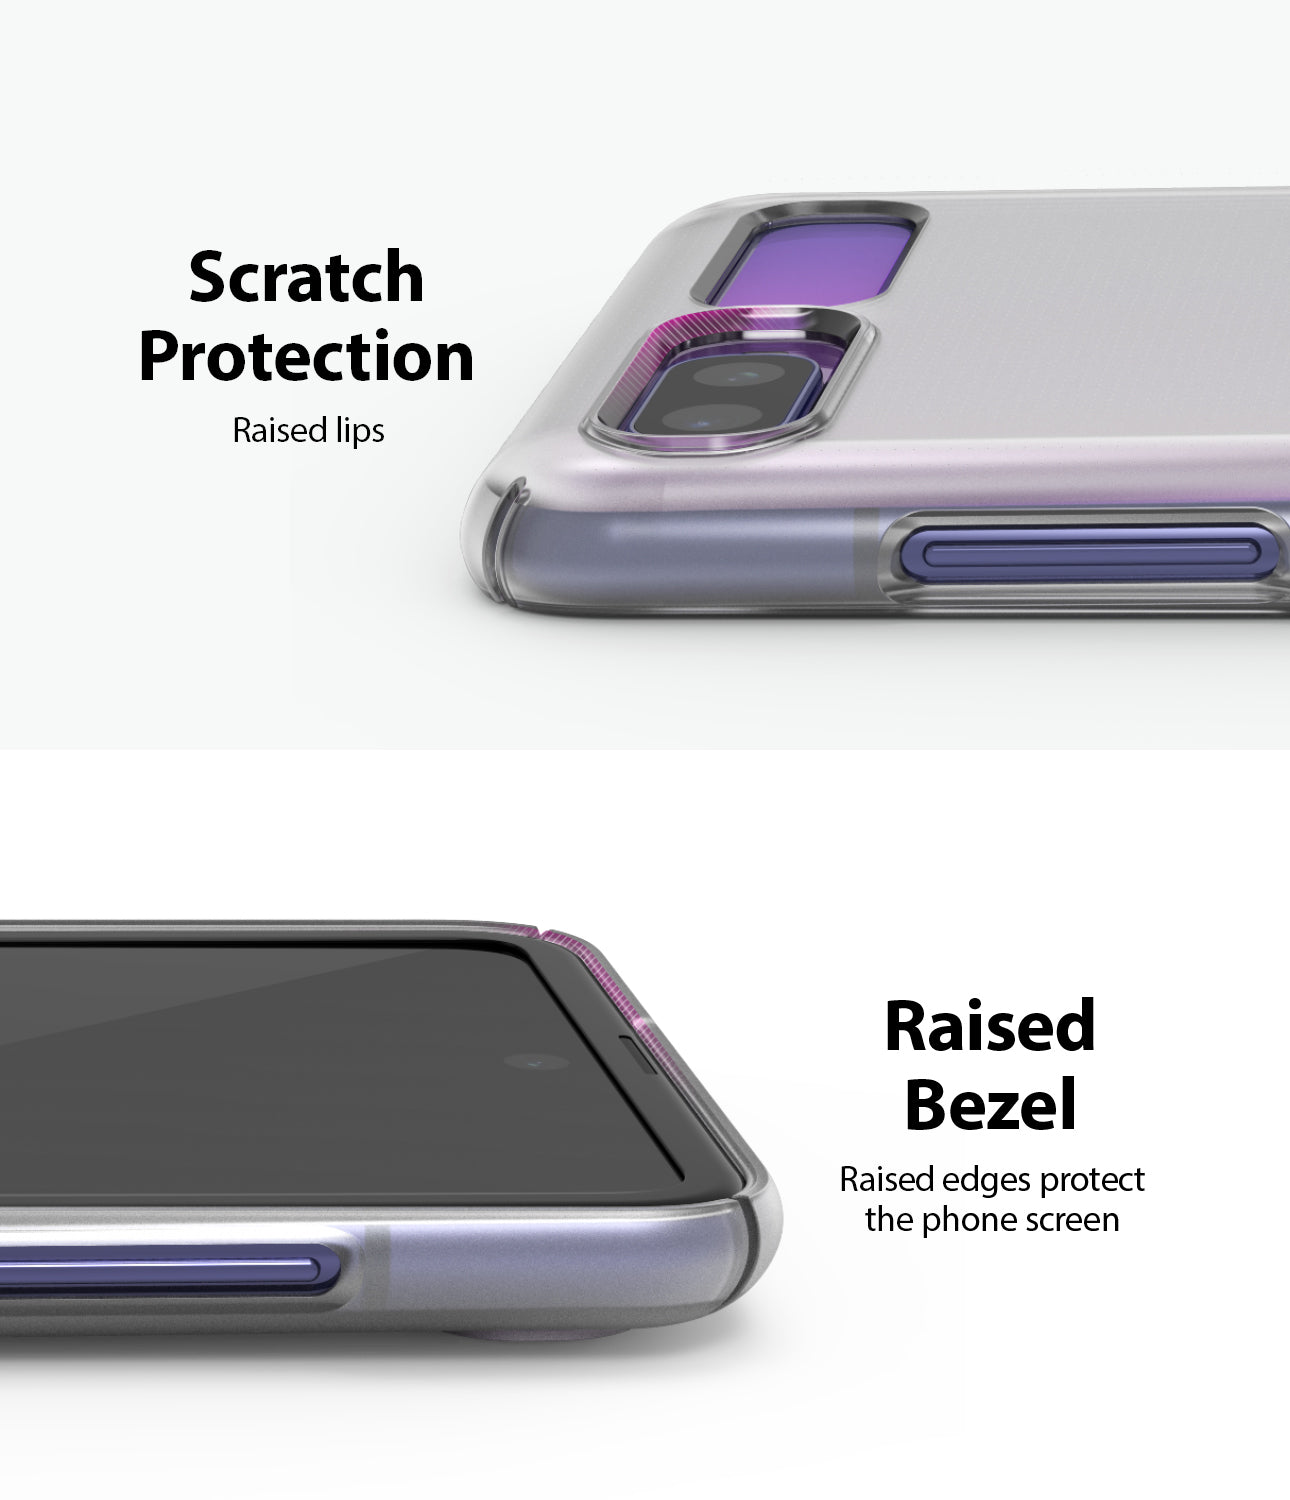 samsung galaxy z flip case scratch resistant and raised bezel